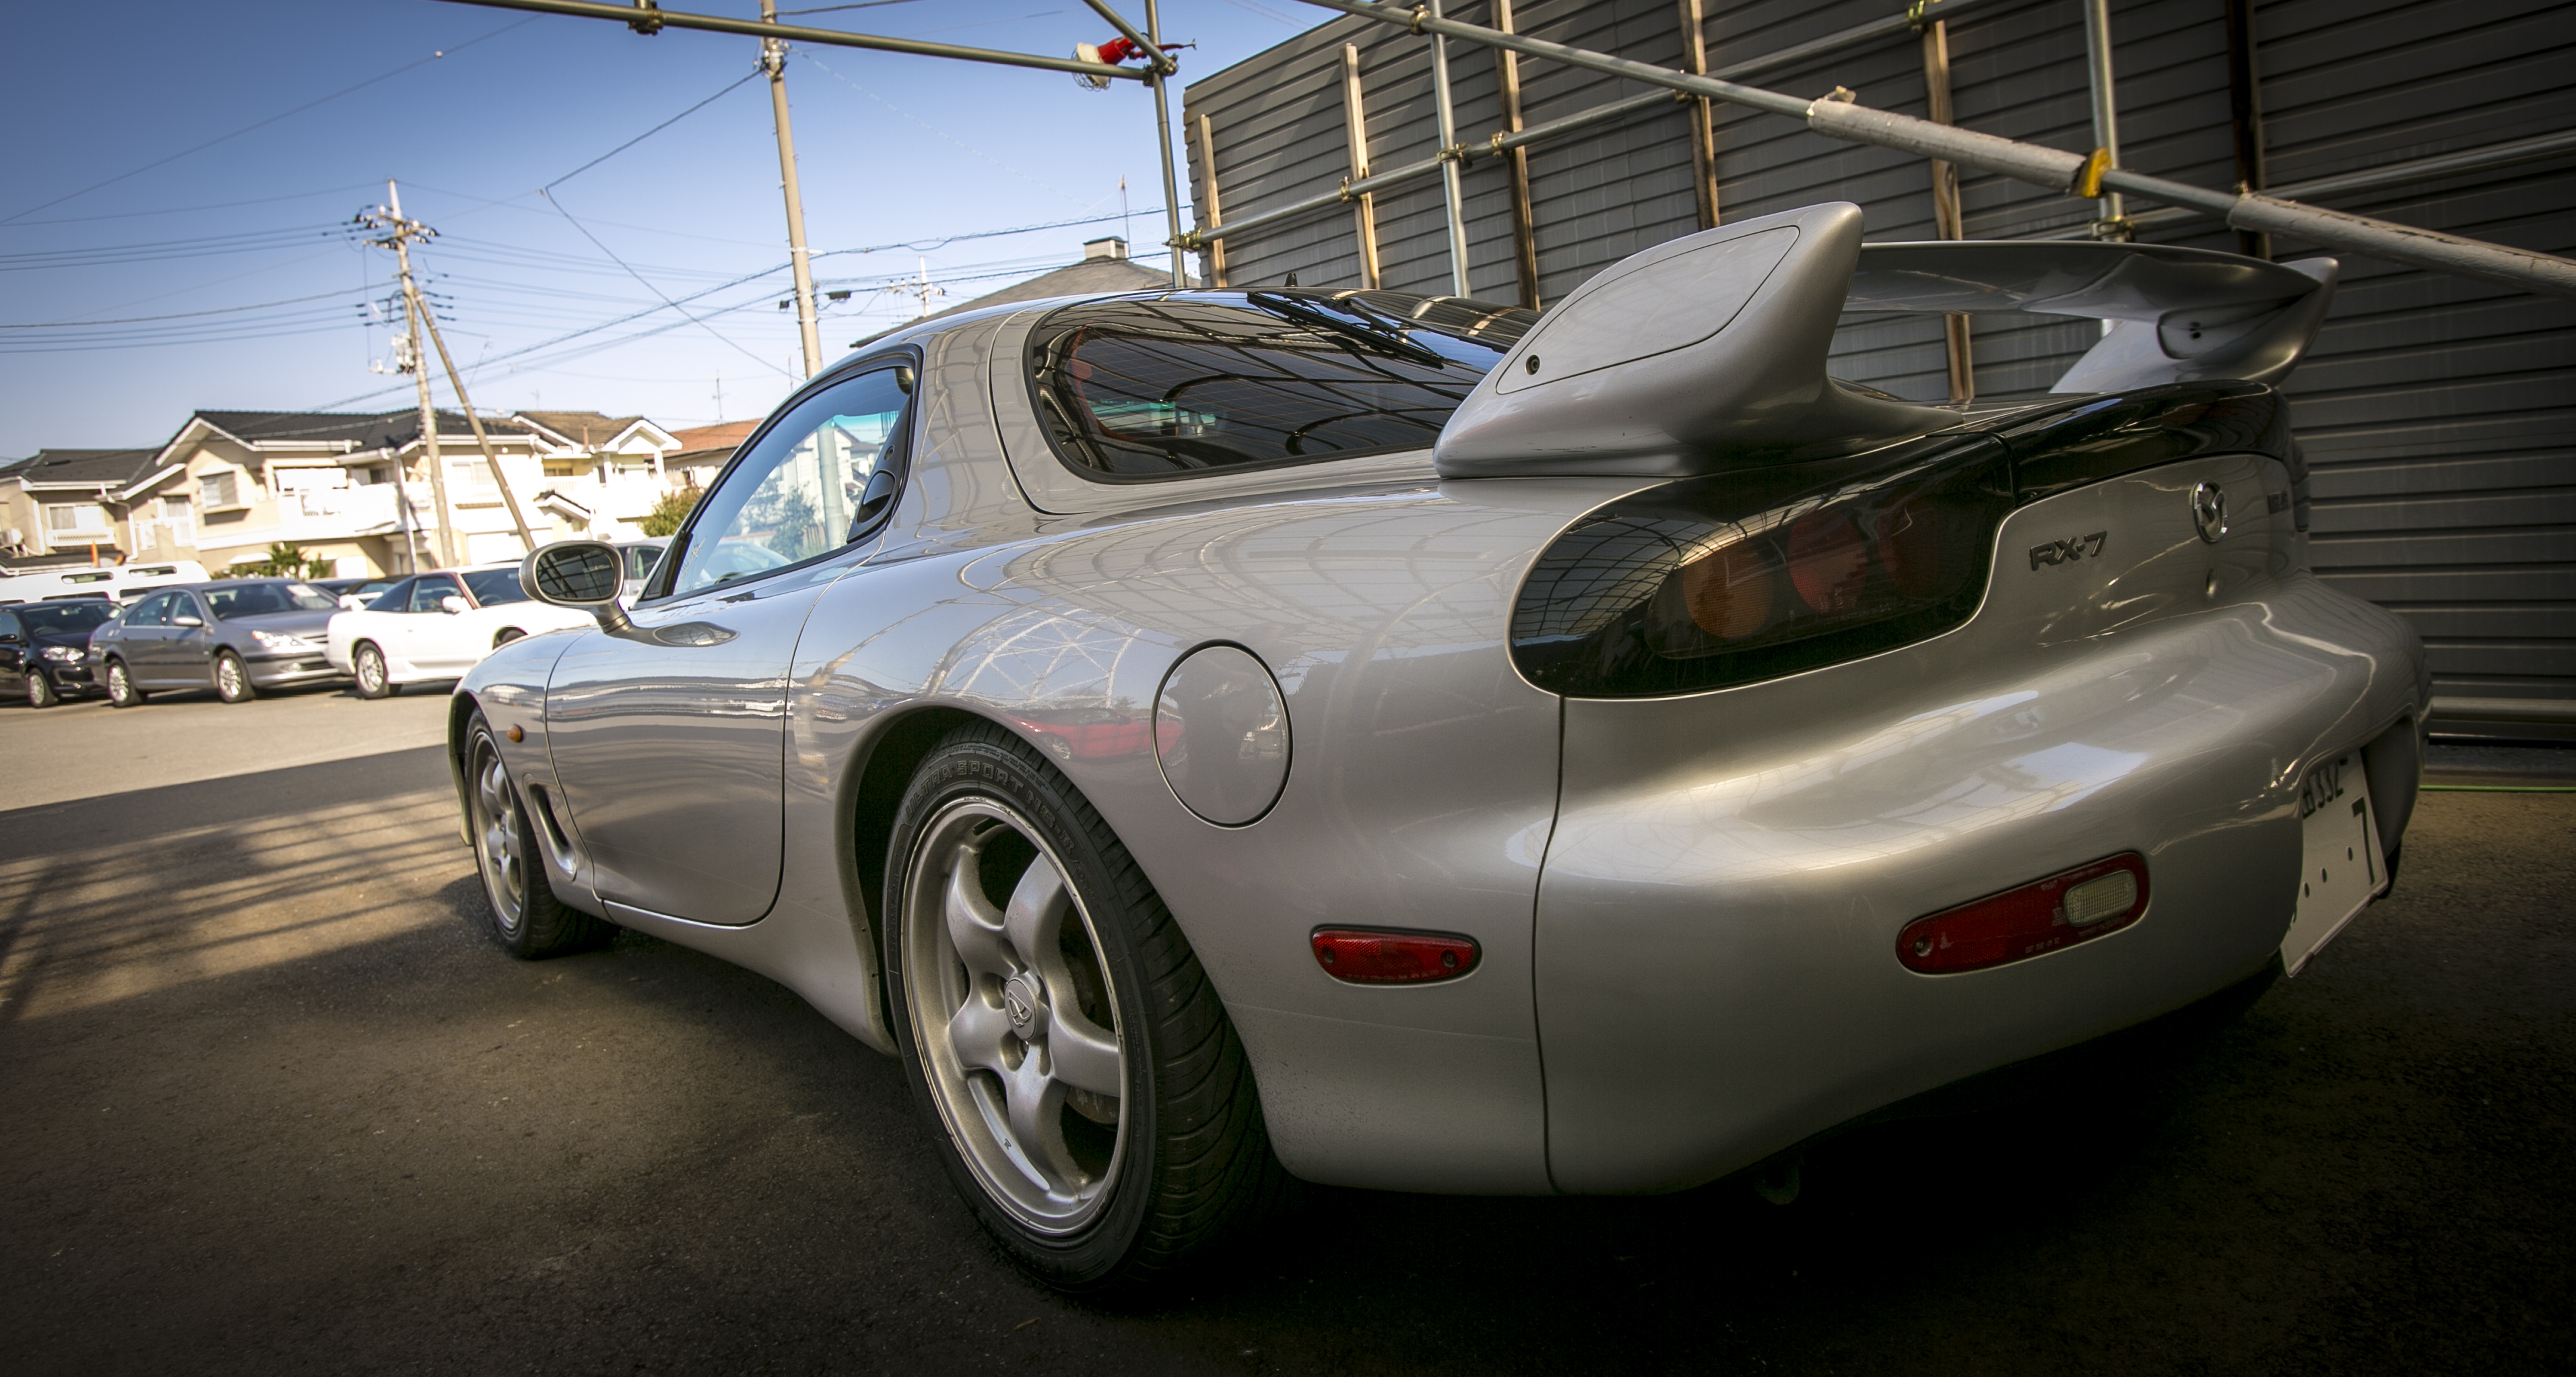 There Were Quite A Few Other Amazing Japanese Cars For Rent Here, Including  Two GTRs: